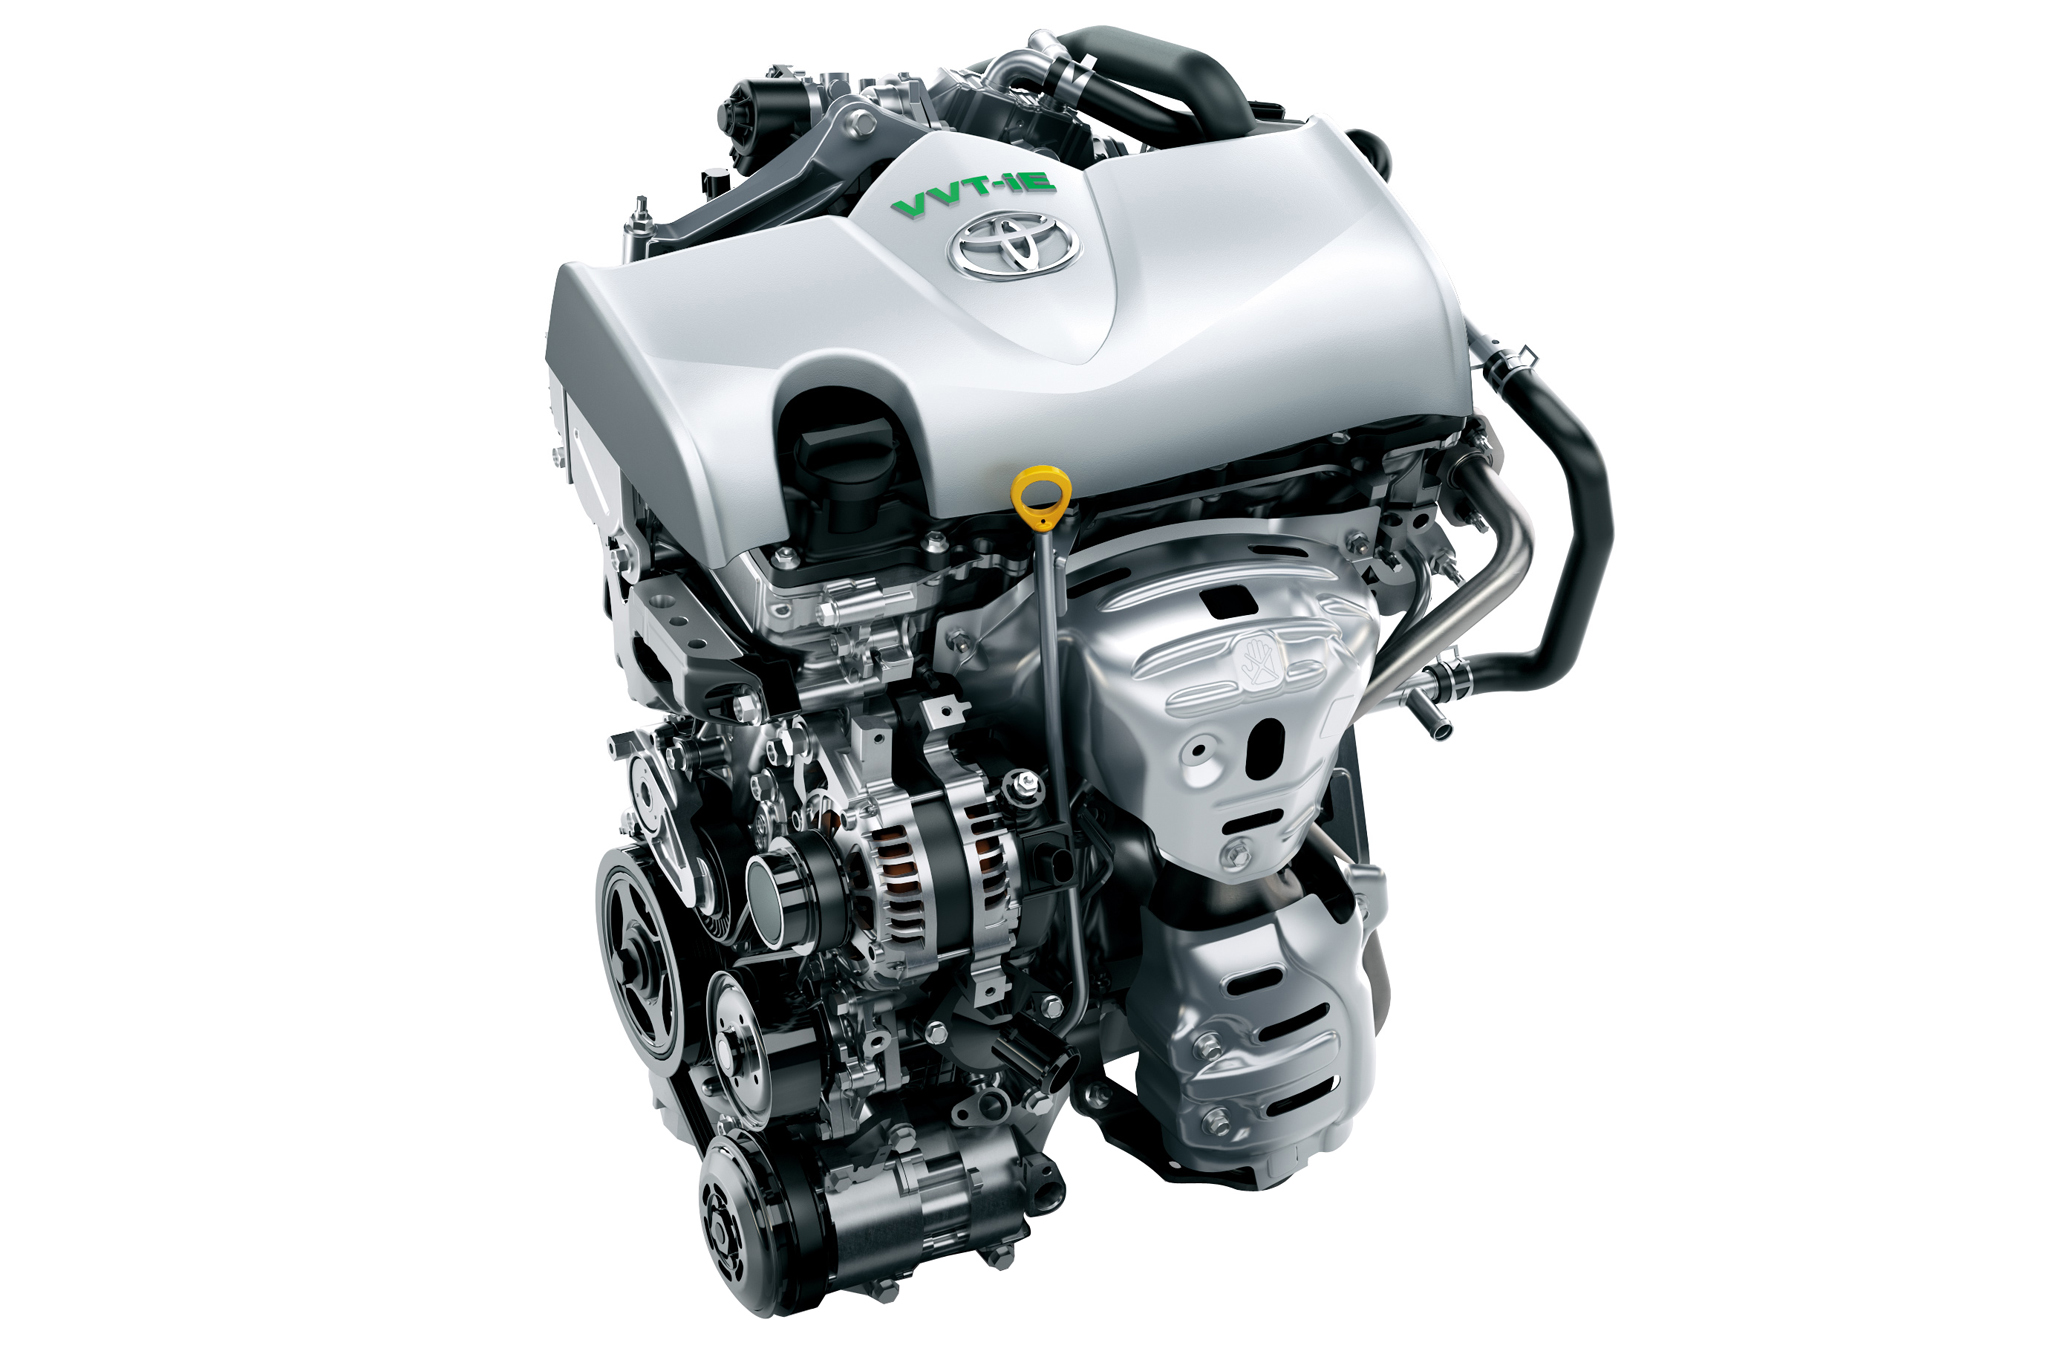 toyota\u0027s future engines employ atkinson cycle for max efficiency Lean Burn Atkinson Cycle Engine toyota\u0027s future engines employ atkinson cycle for max efficiency